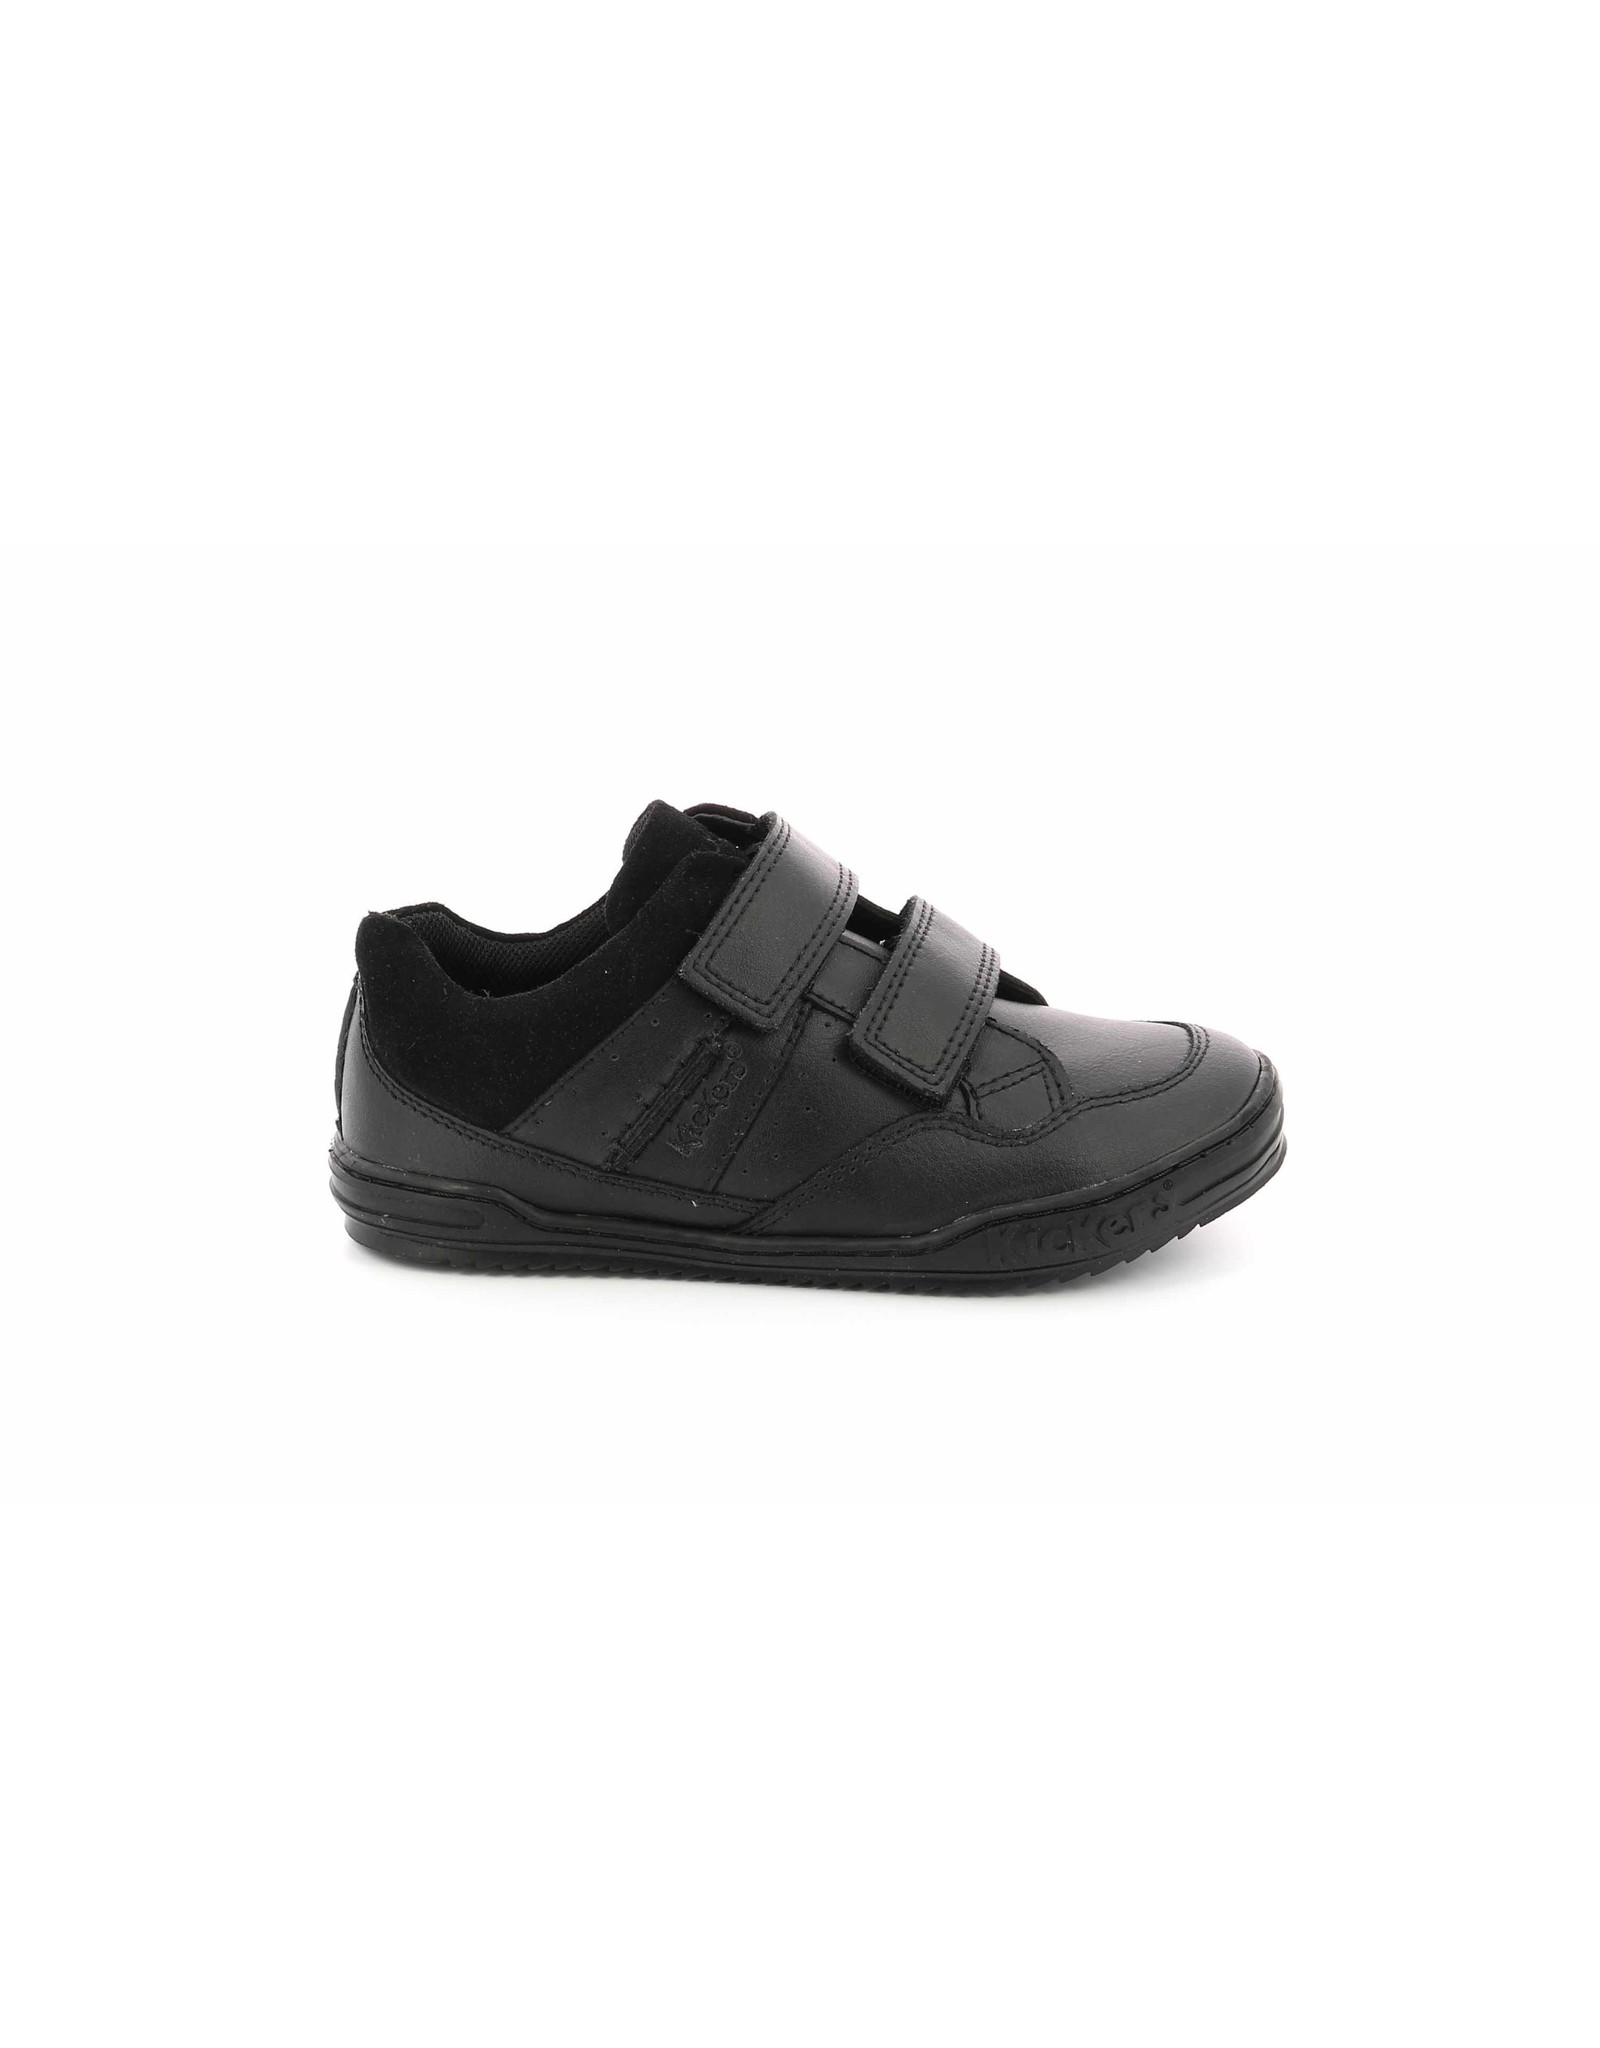 KICKERS JOB BTS NOIR KS87B 19H744840-30